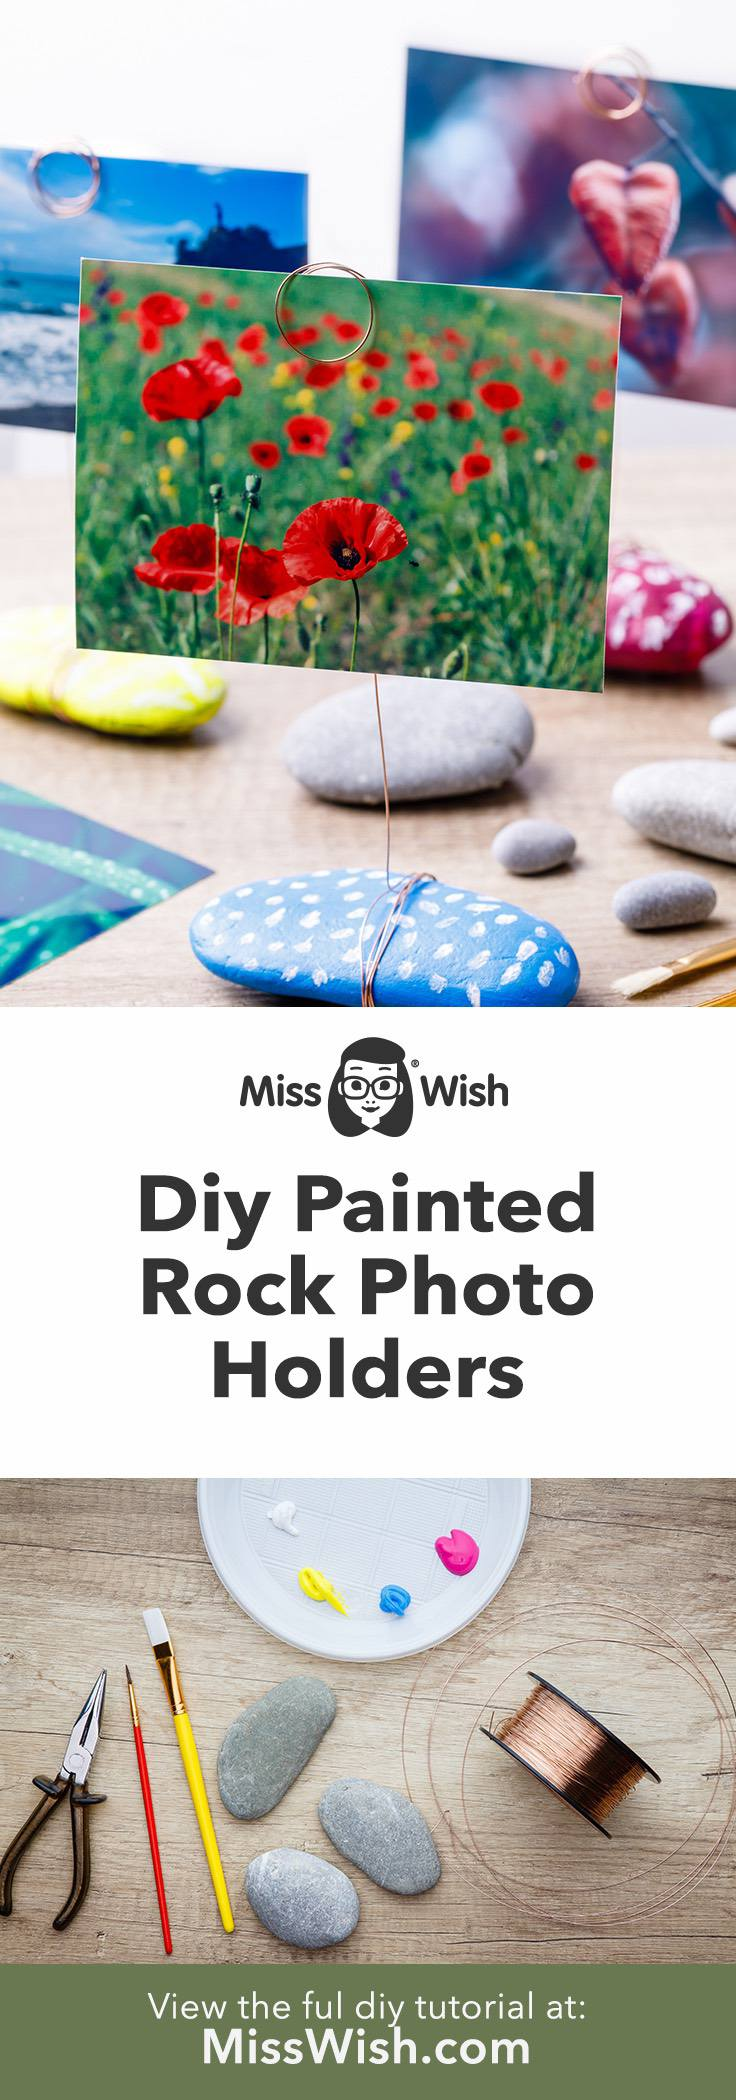 Diy Painted Rock Photo Holders